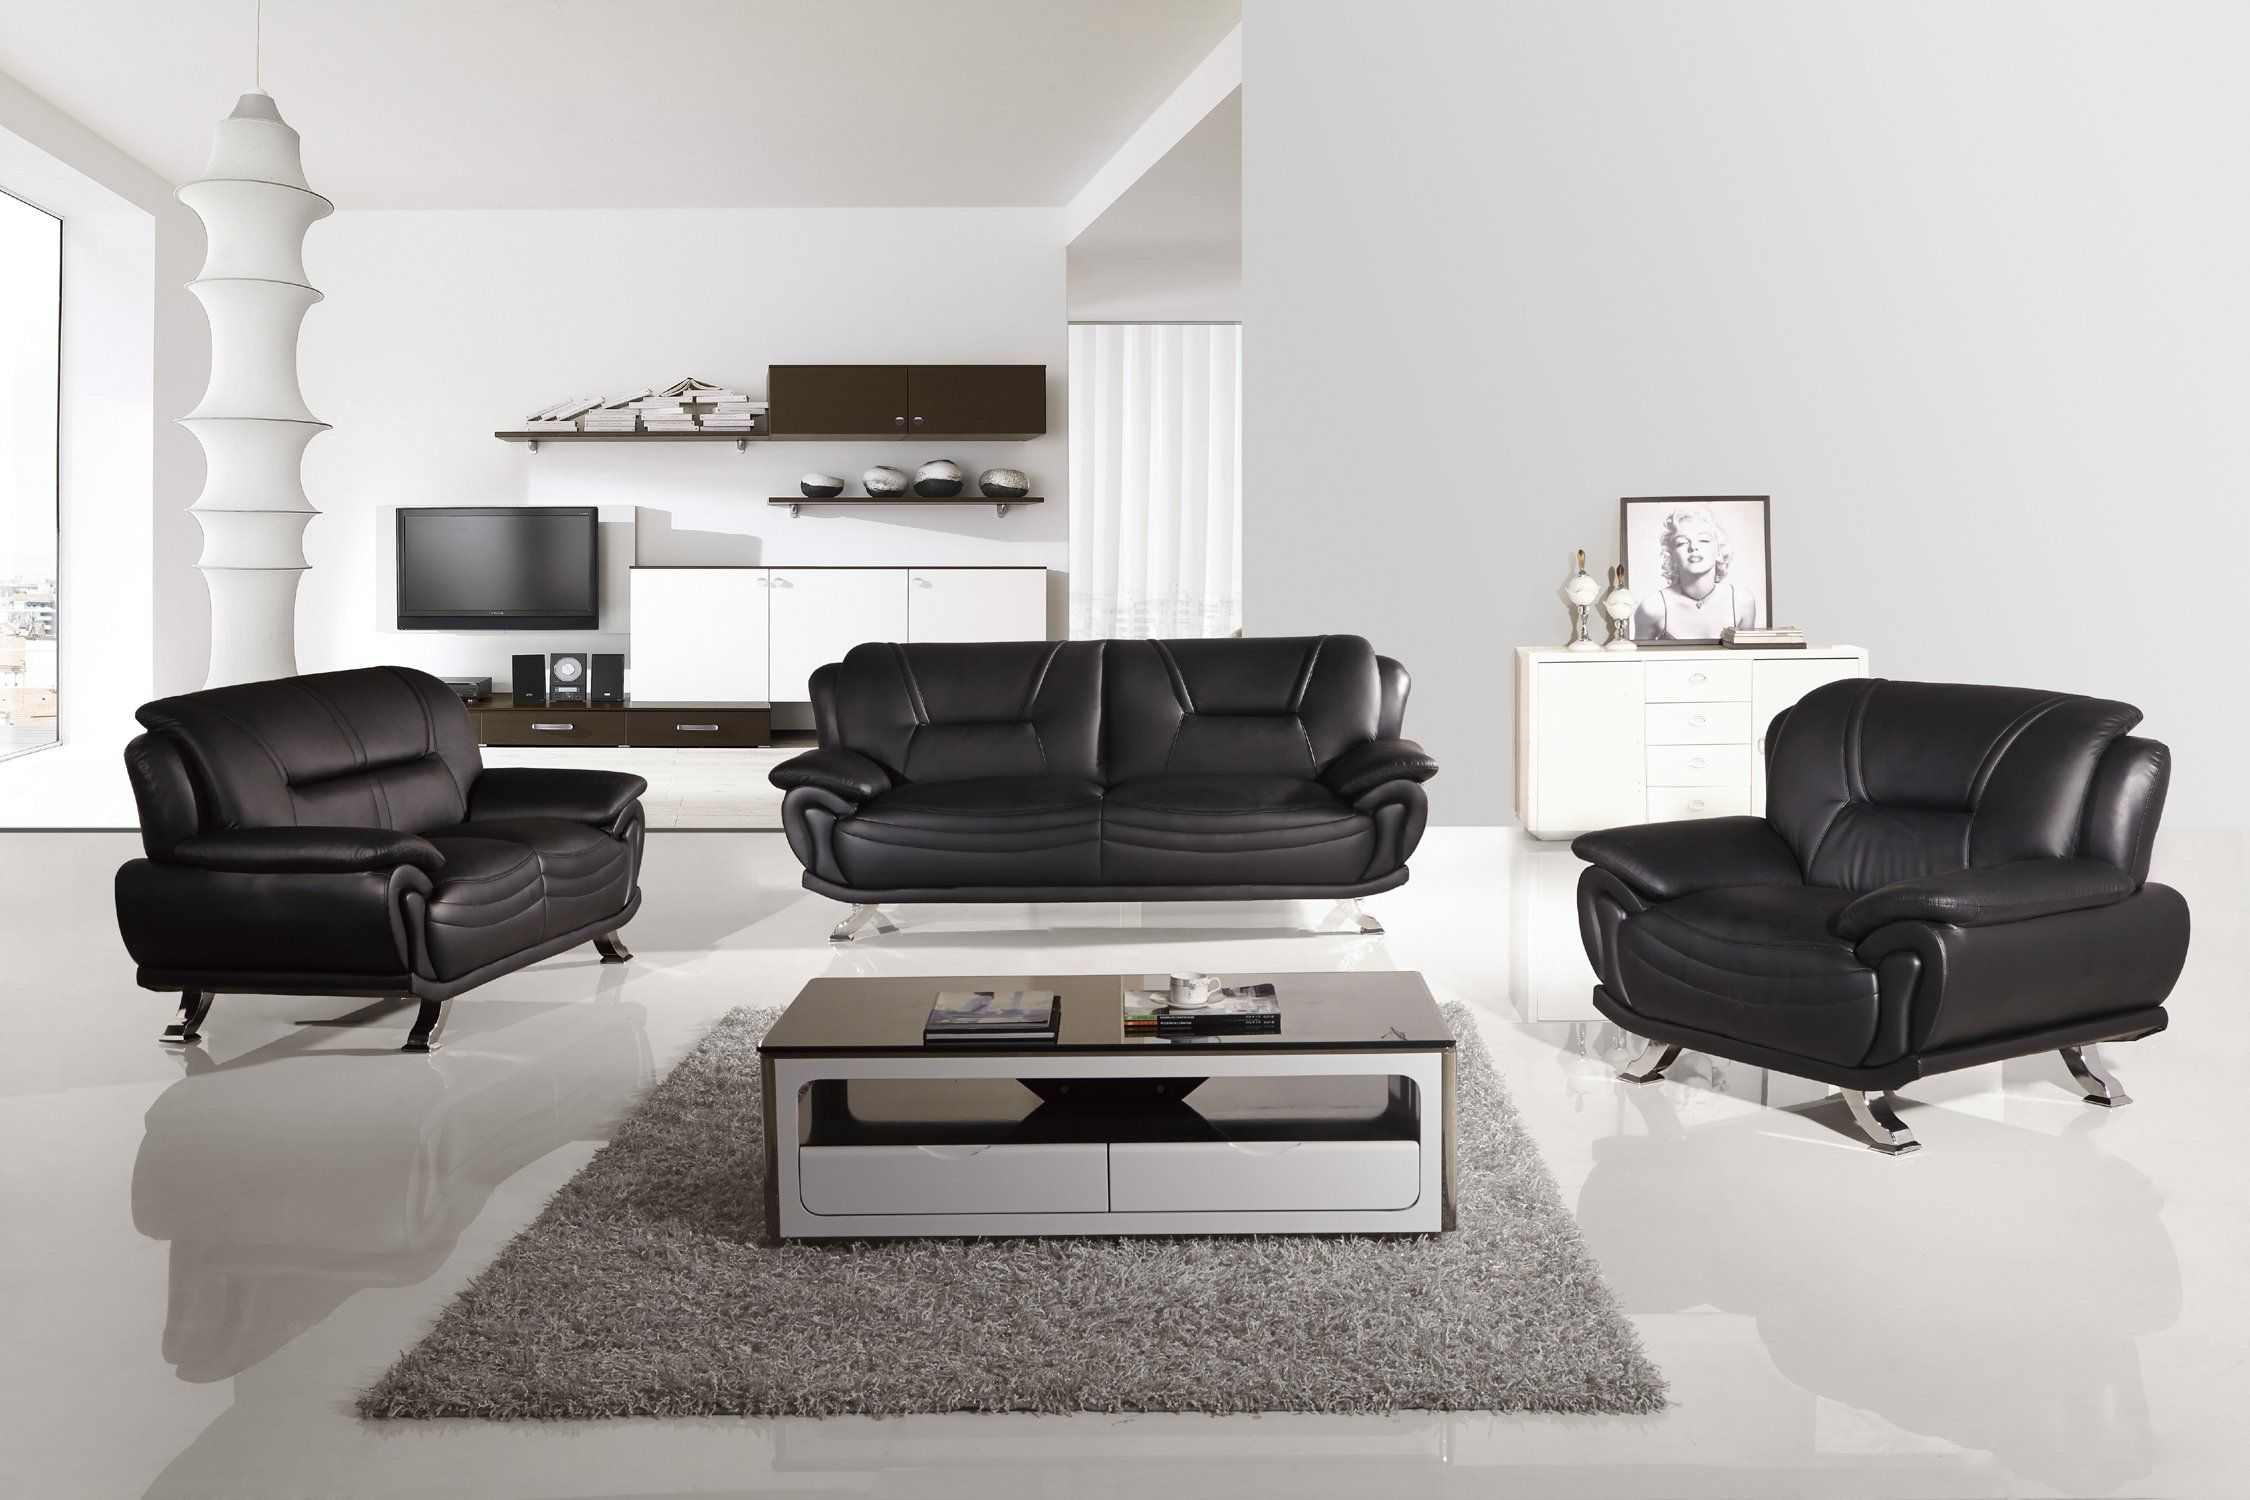 Fantastic American Eagle Ae388 B Modern 3Pcs Black Leather Sofa Set In Gmtry Best Dining Table And Chair Ideas Images Gmtryco